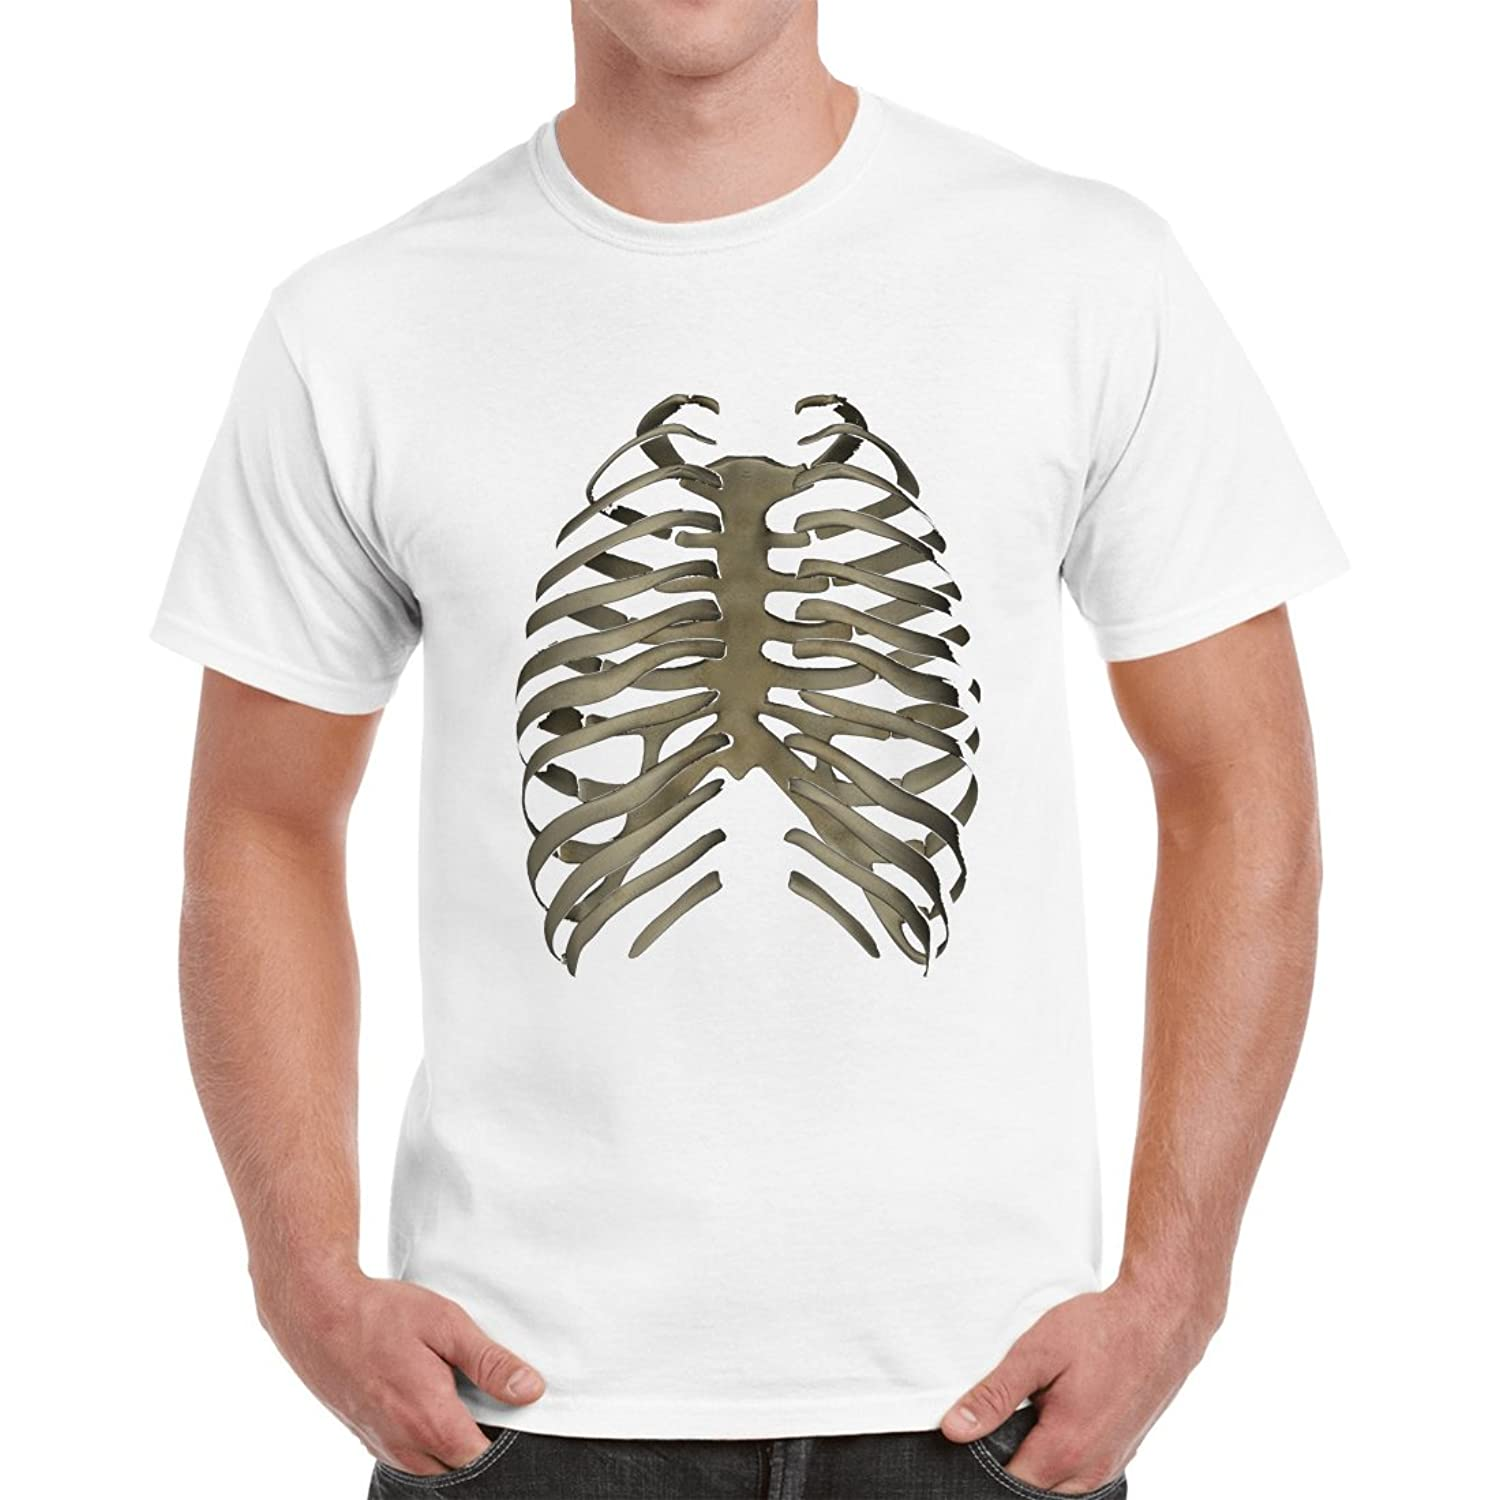 37580317 GeekDawn Men's Round Neck Funny Medical T-Shirt(Skeleton Ribs), White:  Amazon.in: Clothing & Accessories